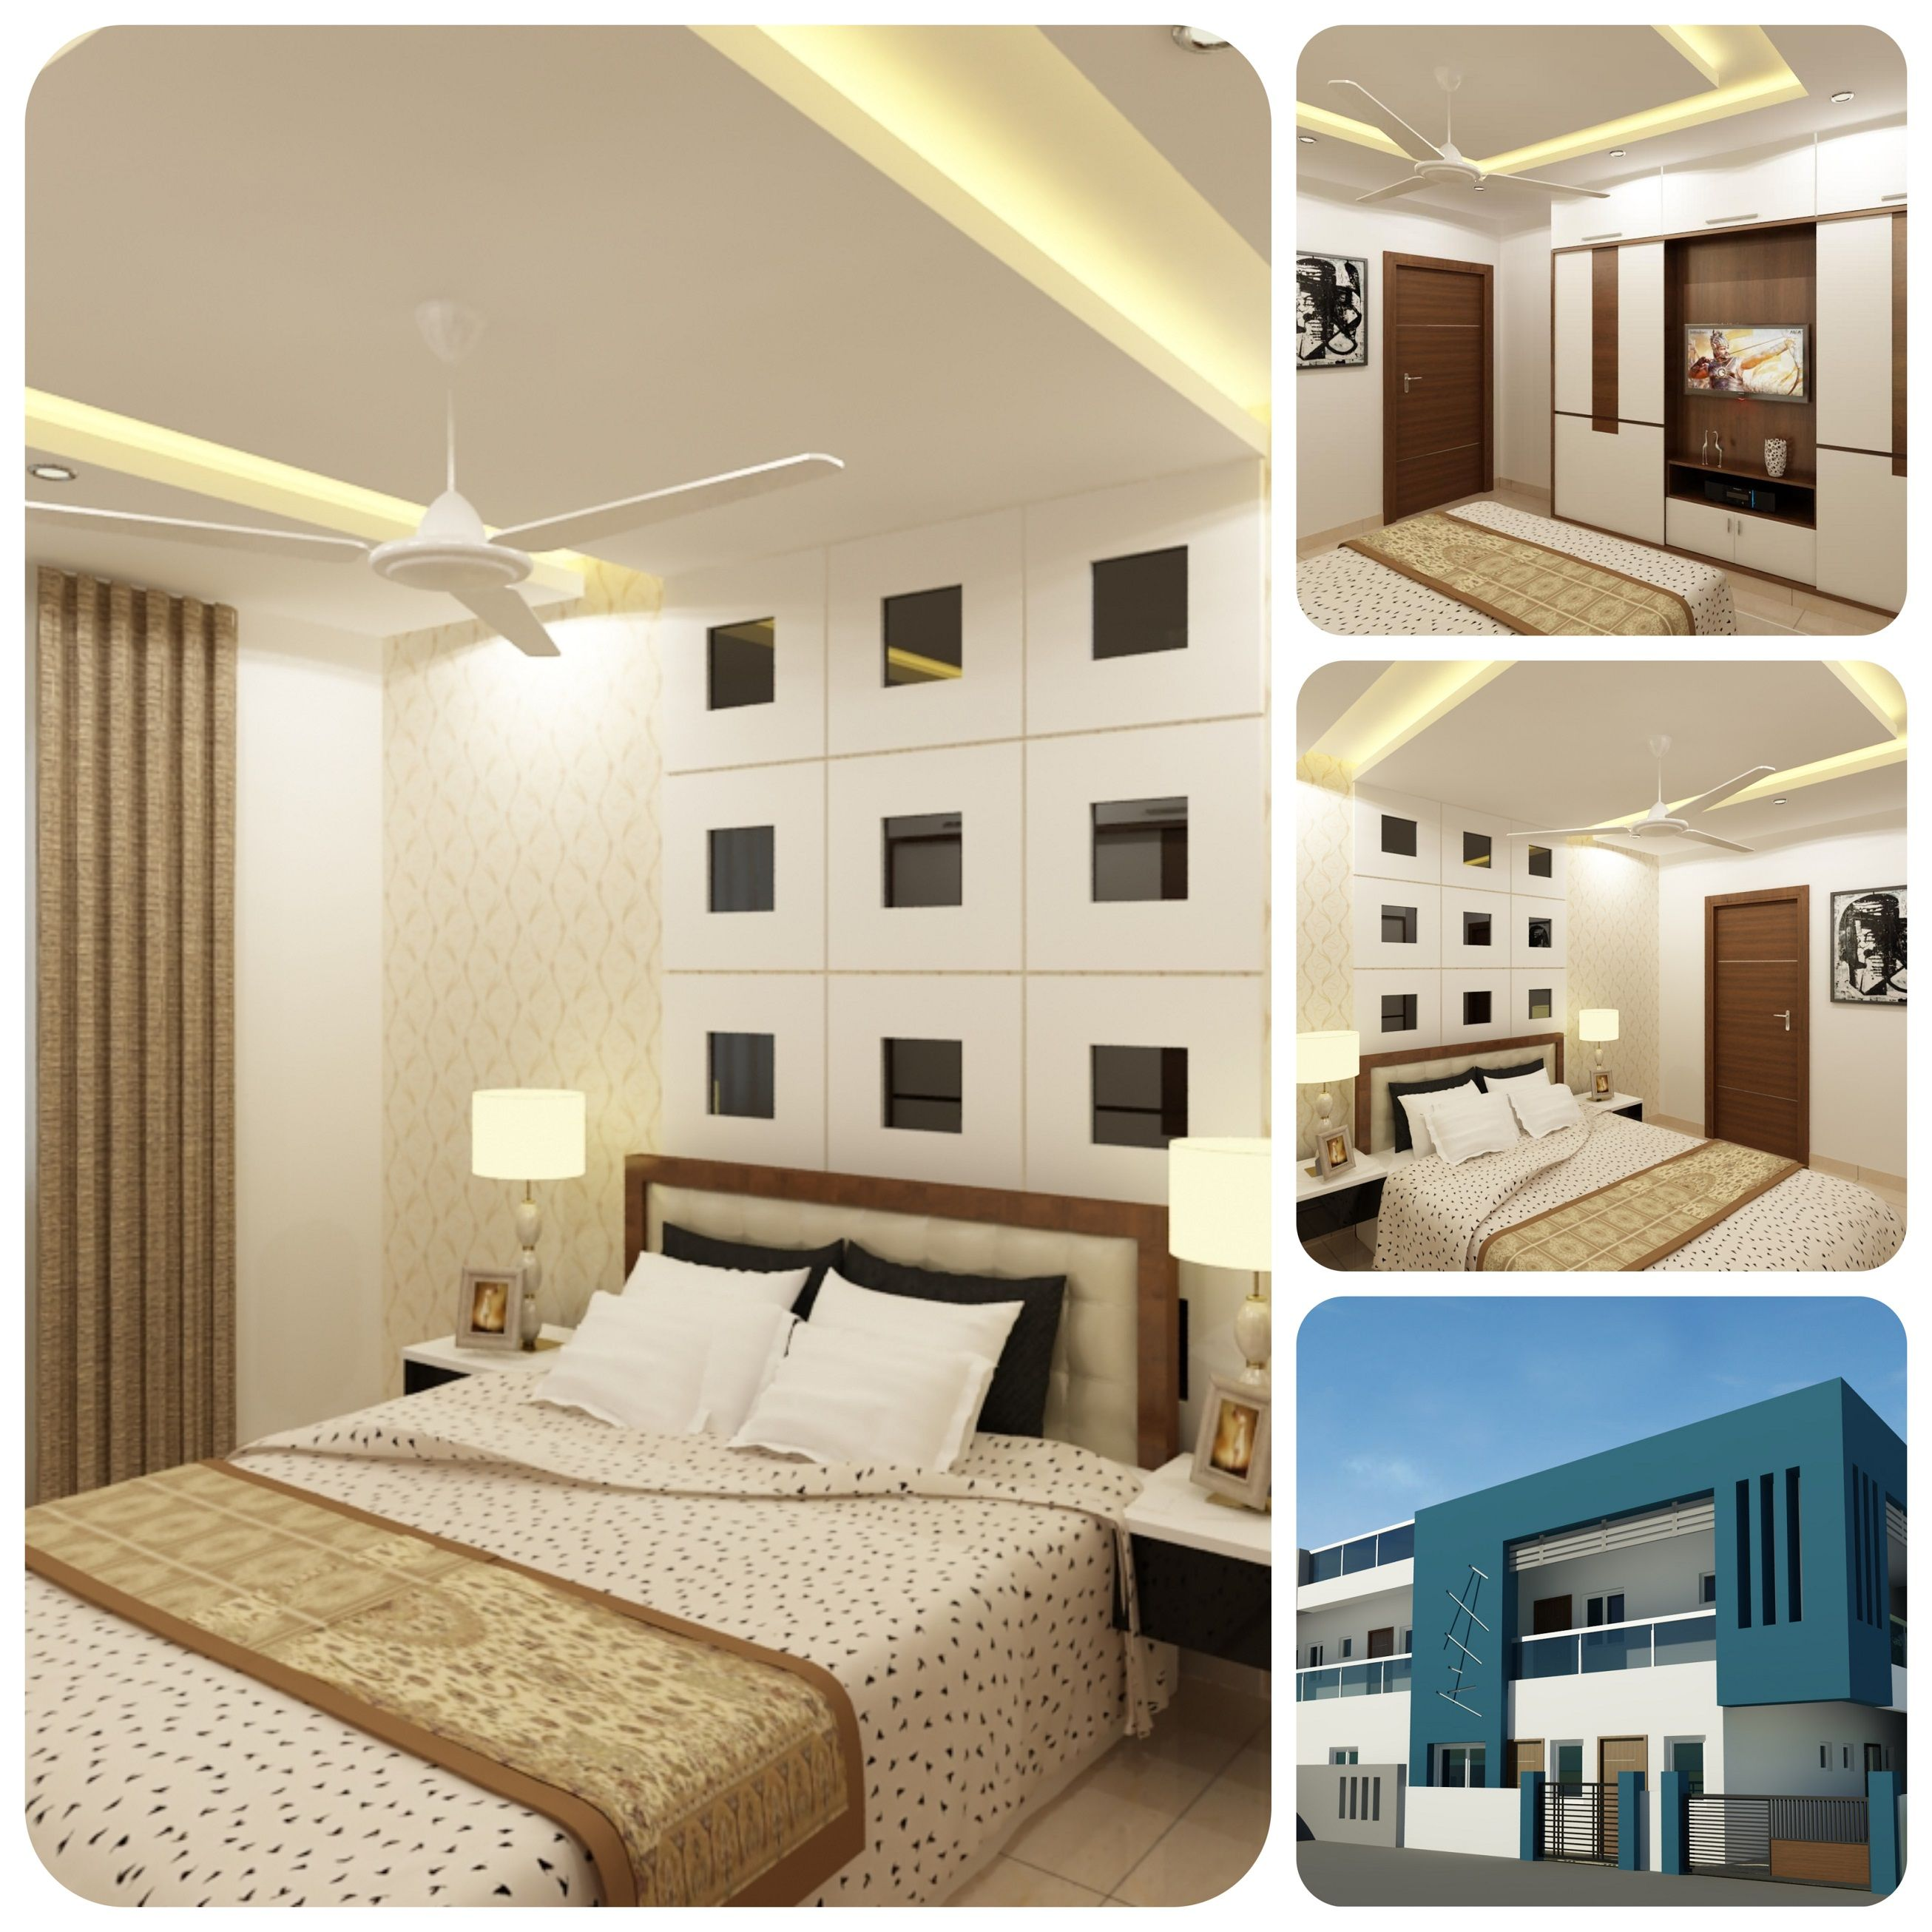 Awesome Bedroom Interior Design By Walls Asia Architects And Engineers For C Interior Designers In Hyderabad Interior Design Bedroom Commercial Interior Design